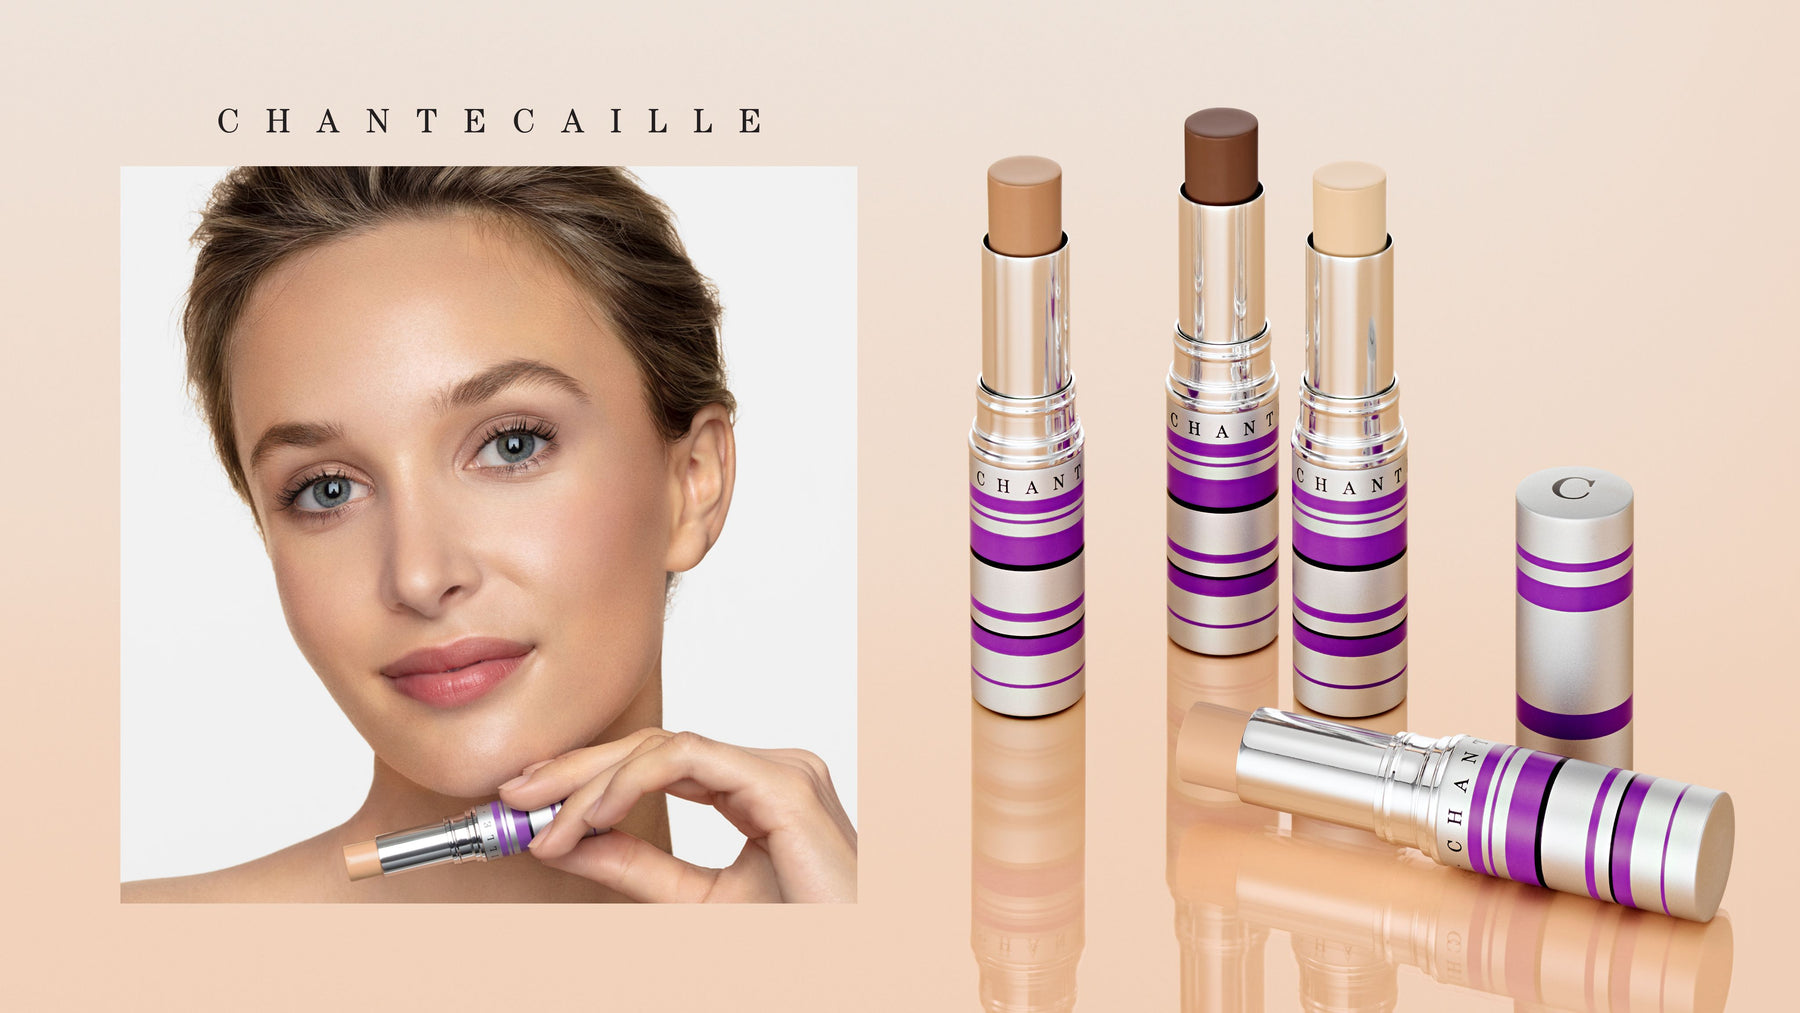 A selection Chantecaille Real Skin + Eye and Face Stick colors and close up of models face and holding product